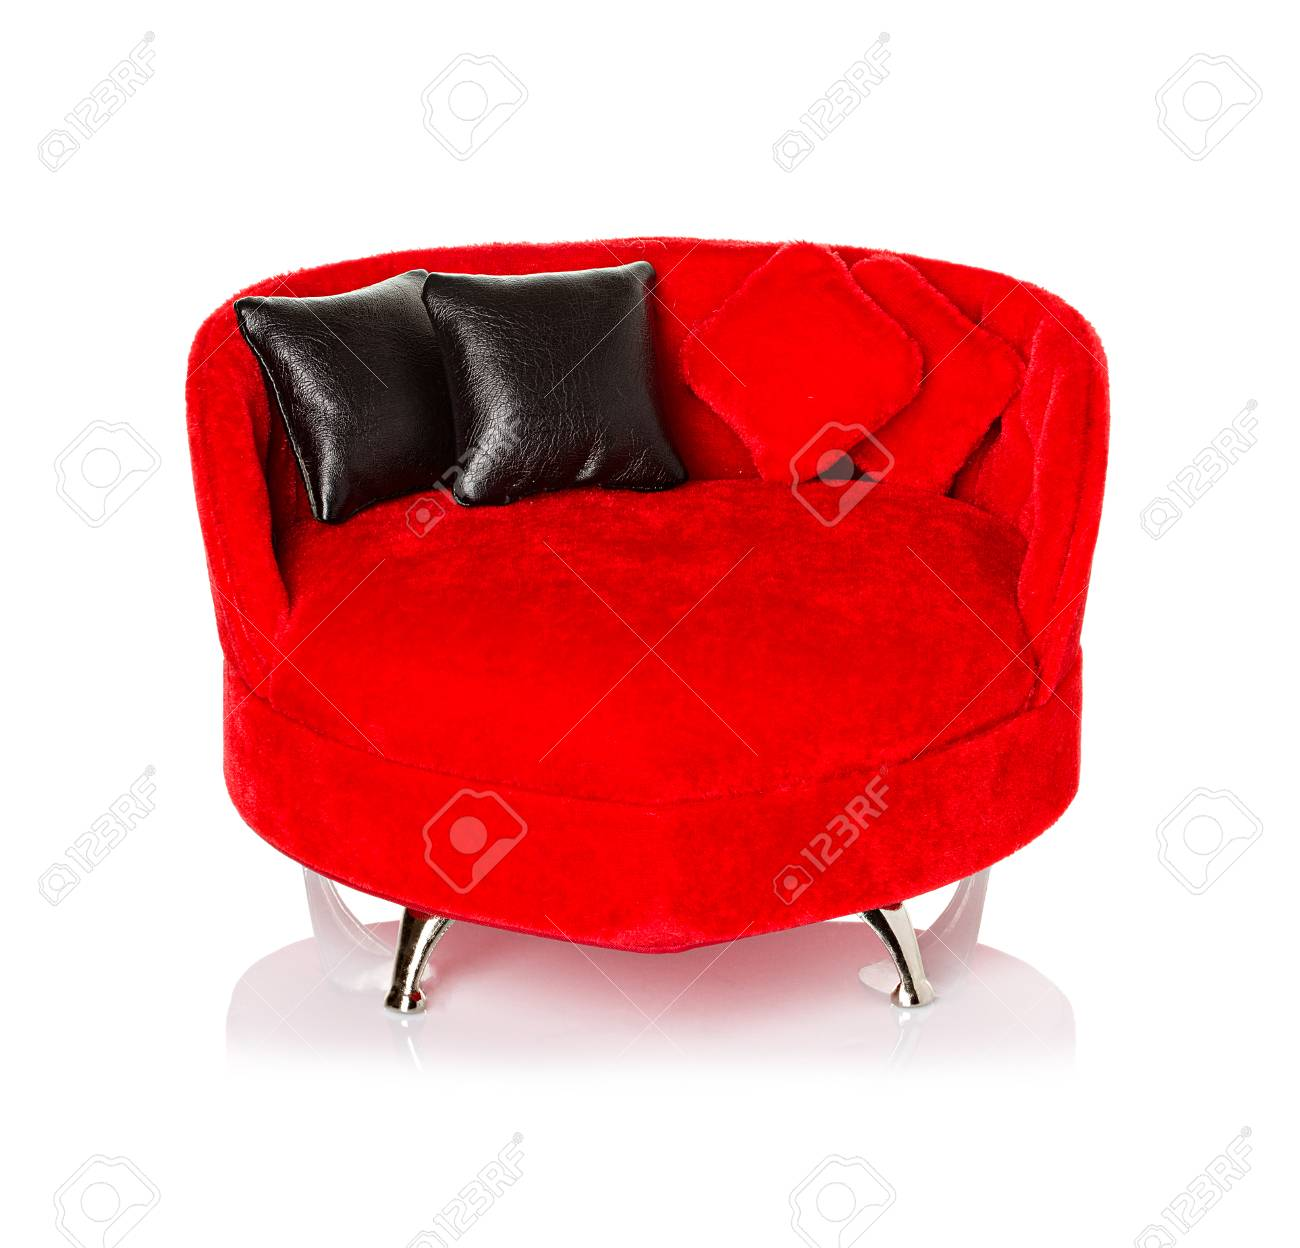 Red sofa, couch Stock Photo - 25254857